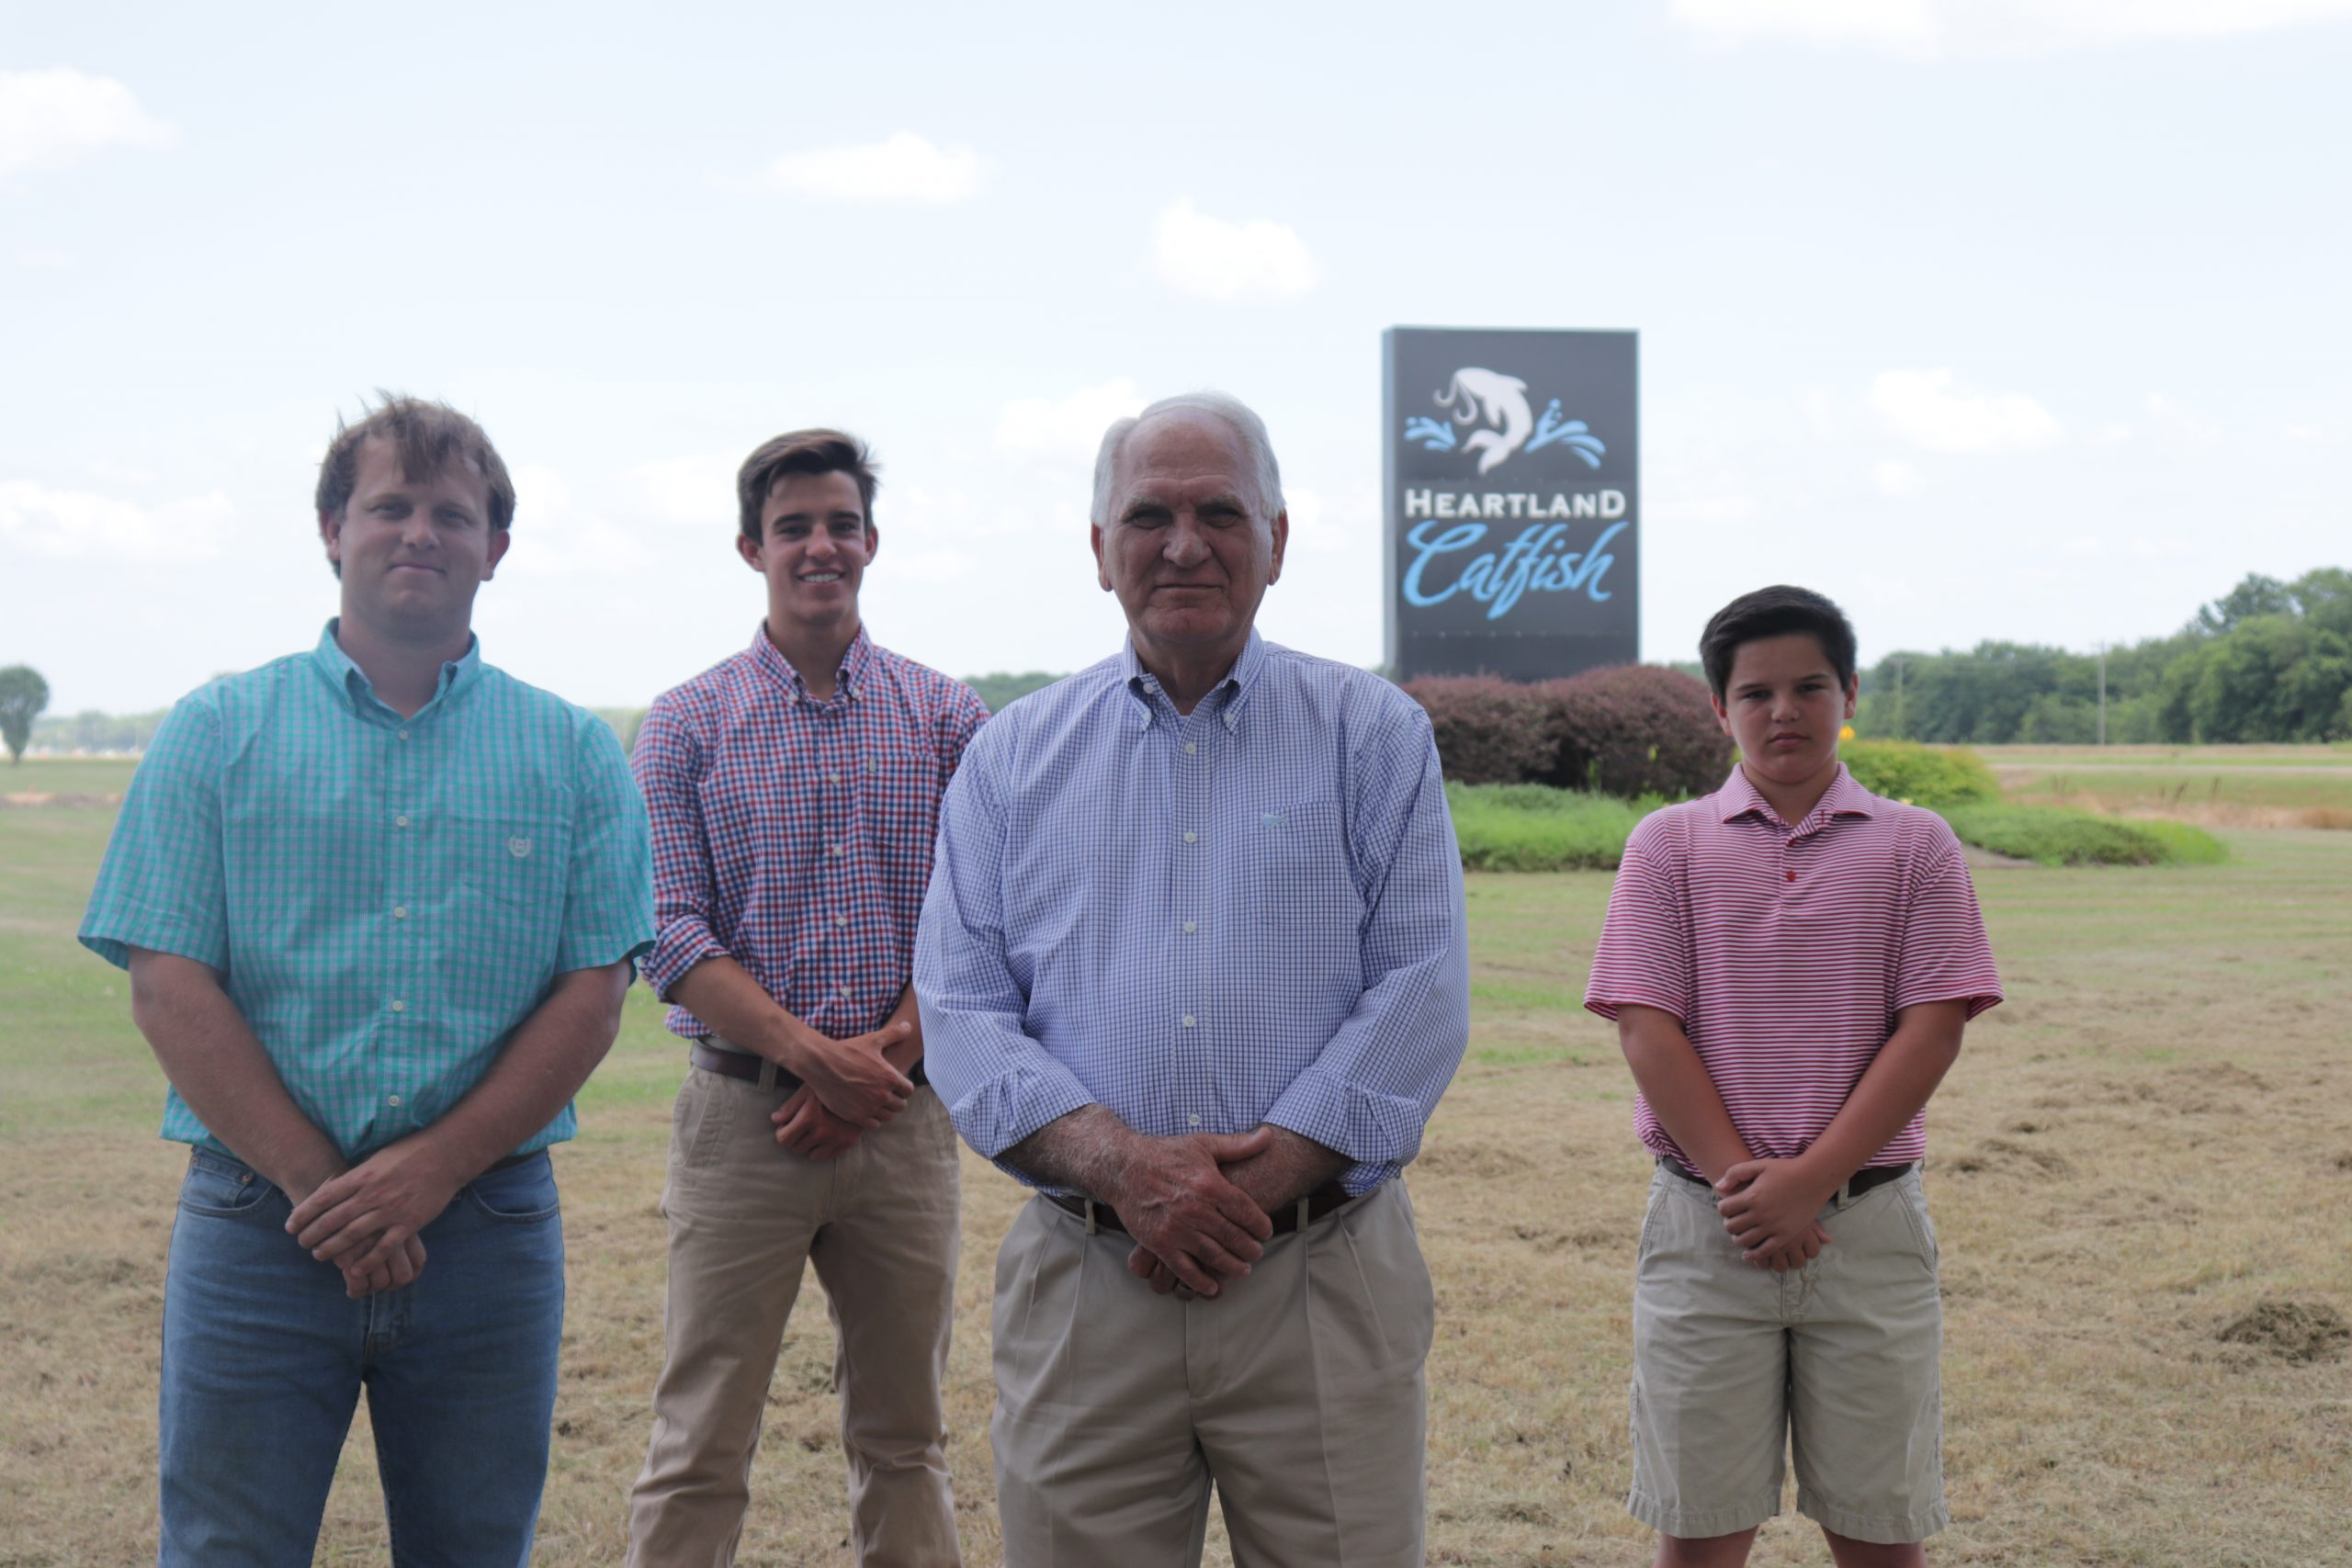 Four generations of Tackett family standing in front of Heartland Catfish sign